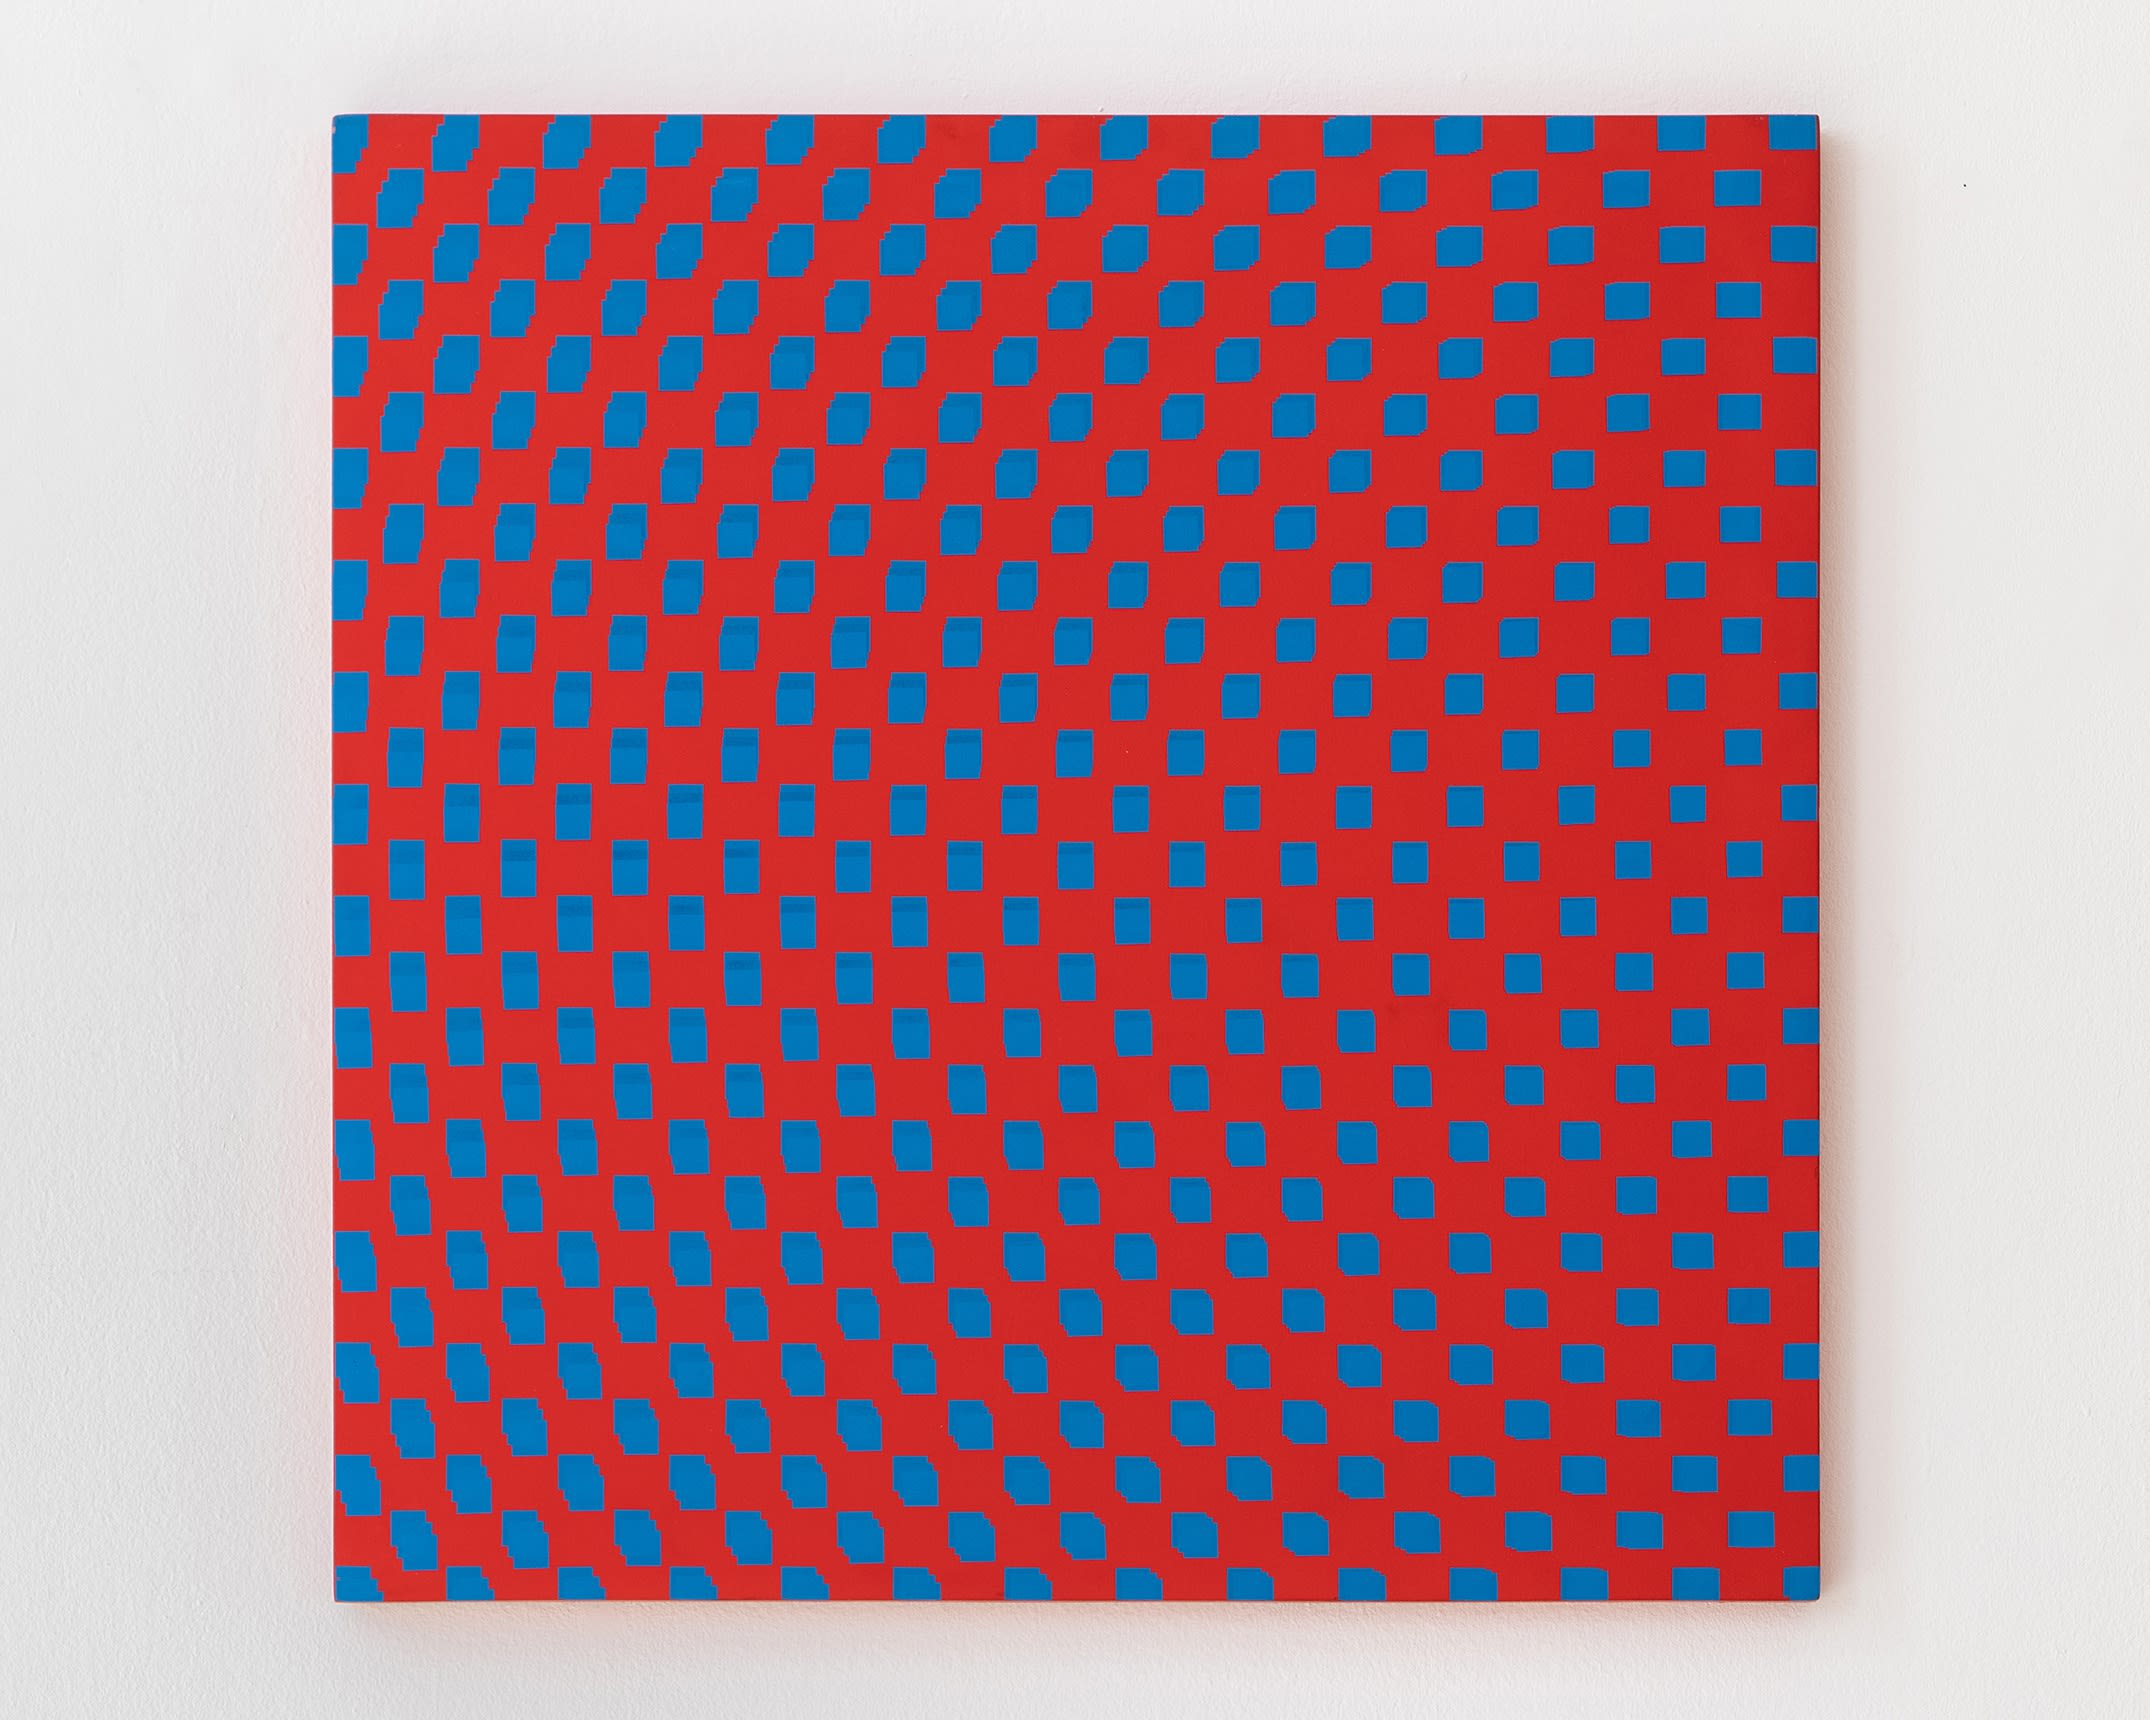 """<span class=""""link fancybox-details-link""""><a href=""""/artists/121-francois-morellet/works/9430-francois-morellet-3-trames-de-carres-reguliers-pivotees-sur-le-1970/"""">View Detail Page</a></span><div class=""""artist""""><span class=""""artist""""><strong>FRANCOIS MORELLET</strong></span></div><div class=""""title""""><em>3 trames de carrés réguliers pivotées sur le côté</em>, 1970</div><div class=""""signed_and_dated"""">Signed, titled and dated with archive number on the reverse</div><div class=""""medium"""">Silkscreen on board </div><div class=""""dimensions"""">80 x 80 cm<br /> 31 1/2 x 31 1/2 inches</div>"""